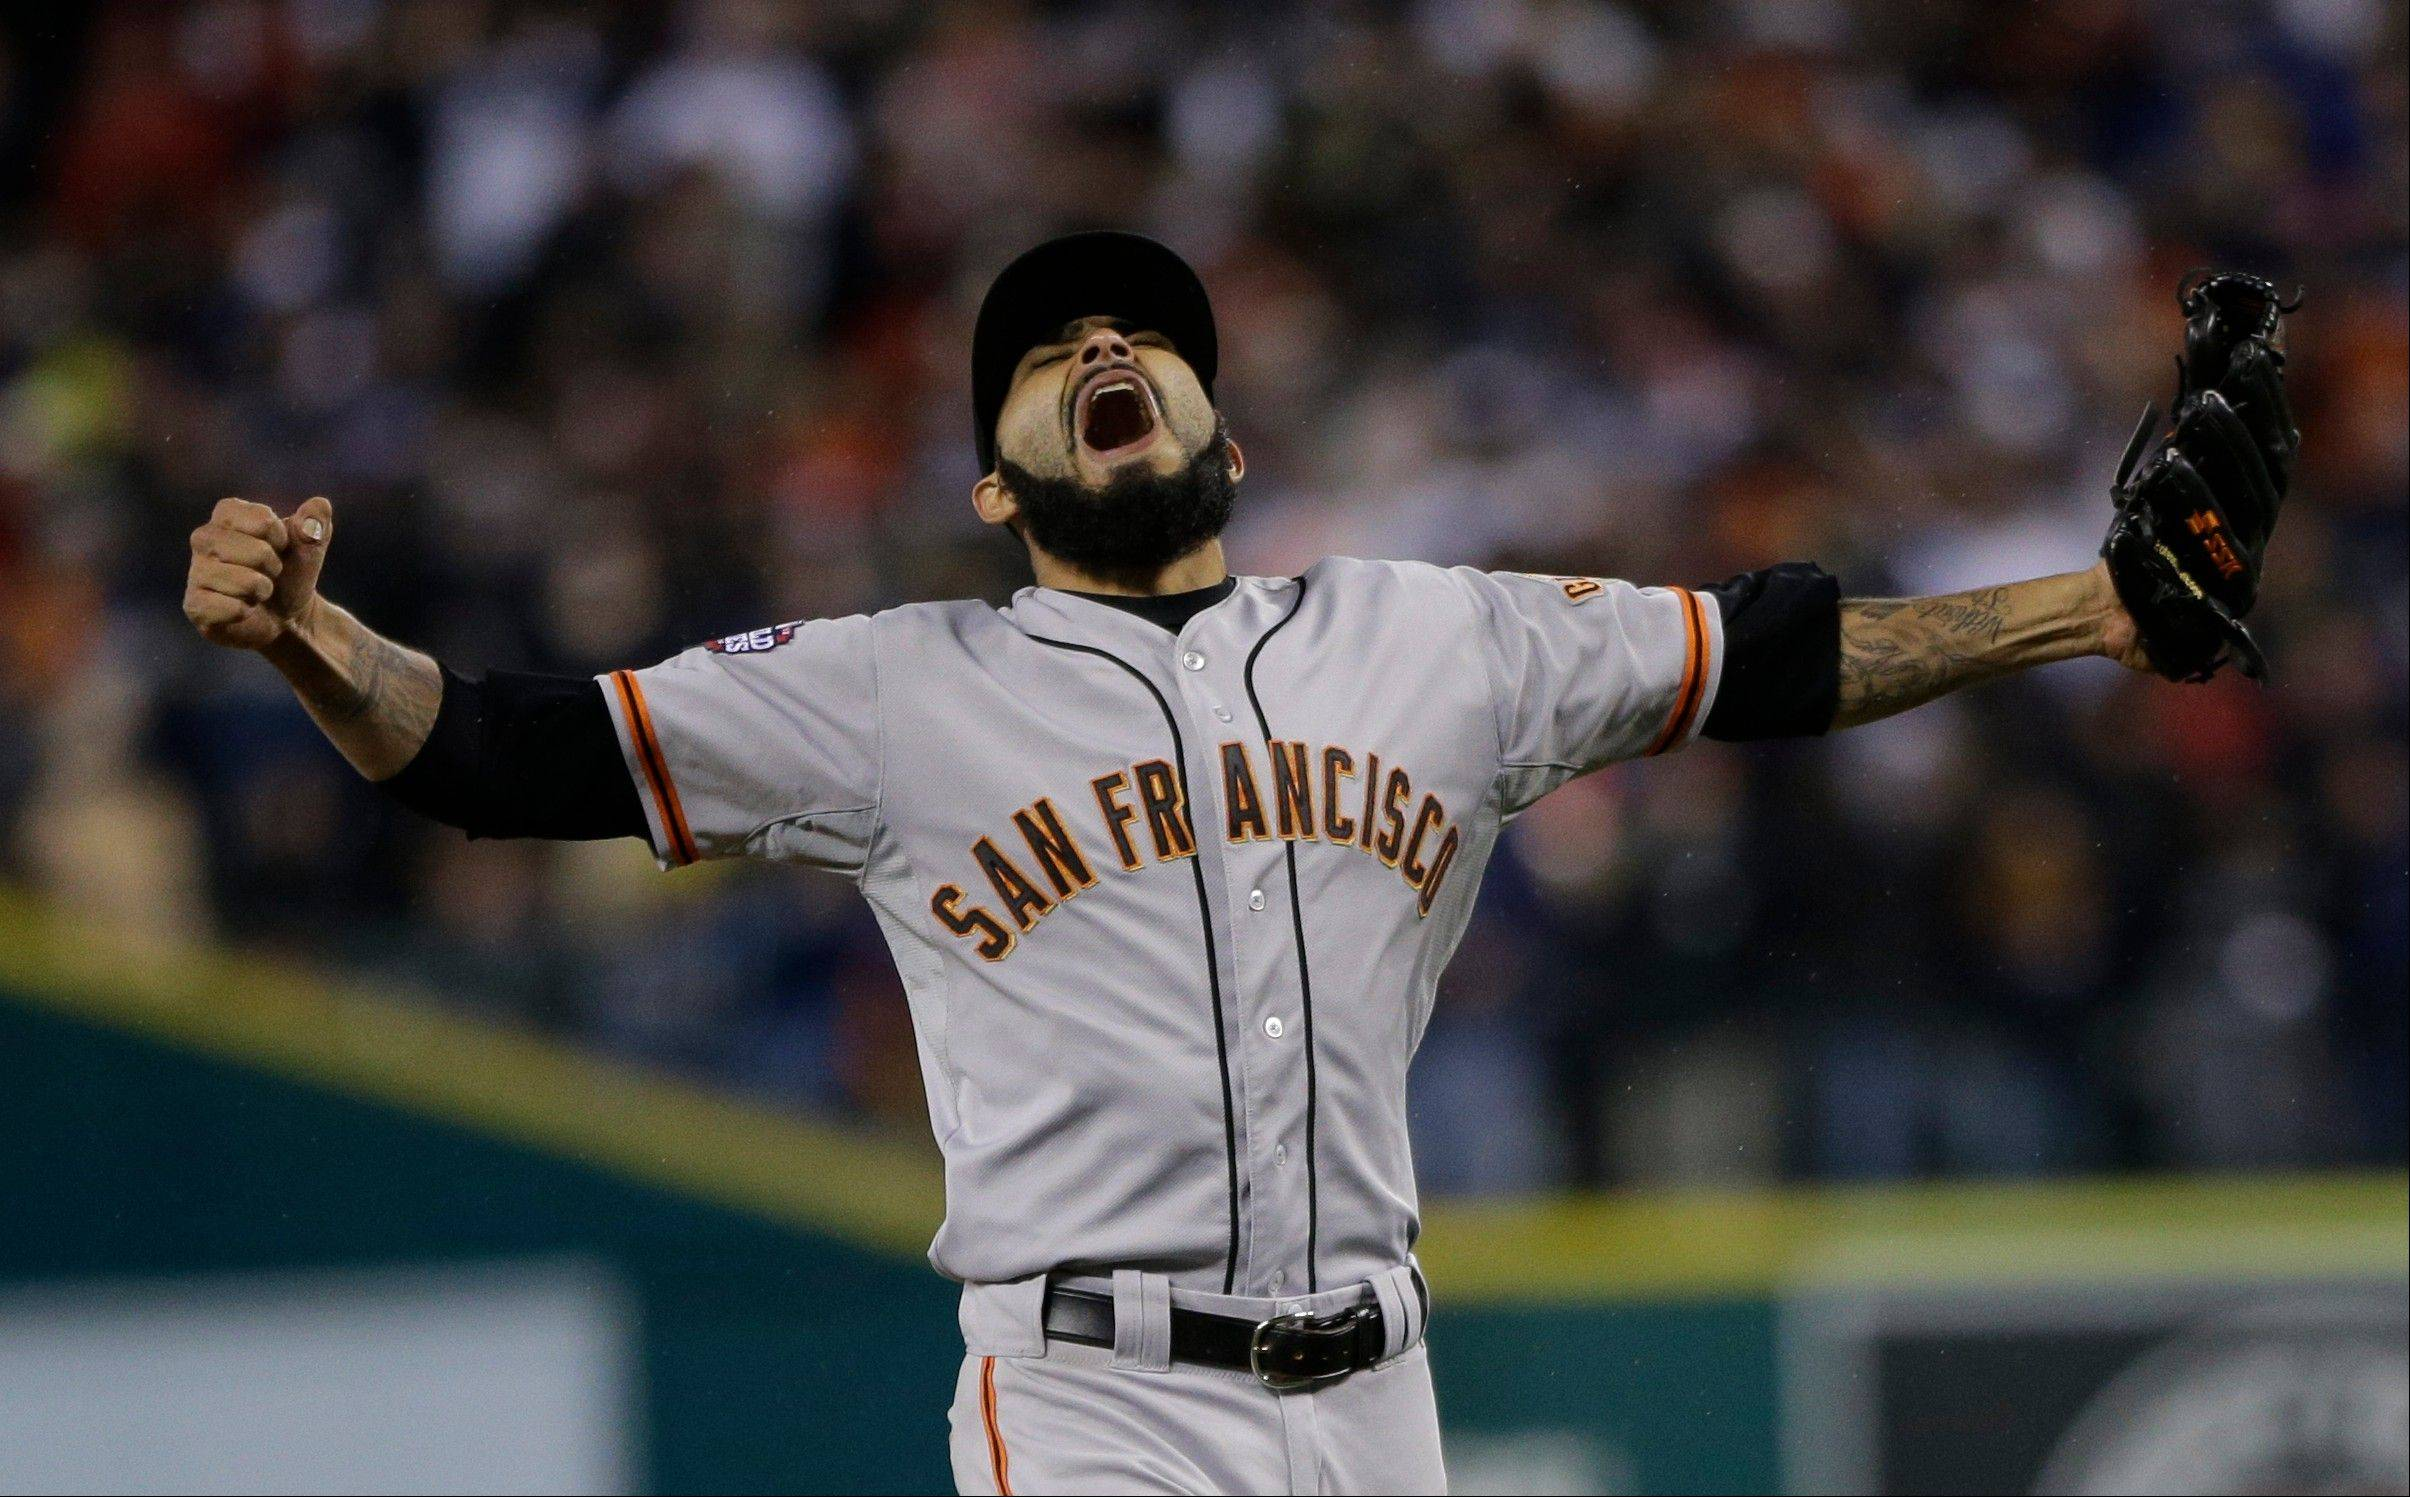 San Francisco Giants pitcher Sergio Romo reacts after striking out Detroit Tigers' Miguel Cabrera in the 10th inning of Game 4 of baseball's World Series Sunday, Oct. 28, 2012, in Detroit. The Giants won the game 4-3 to win the World Series.